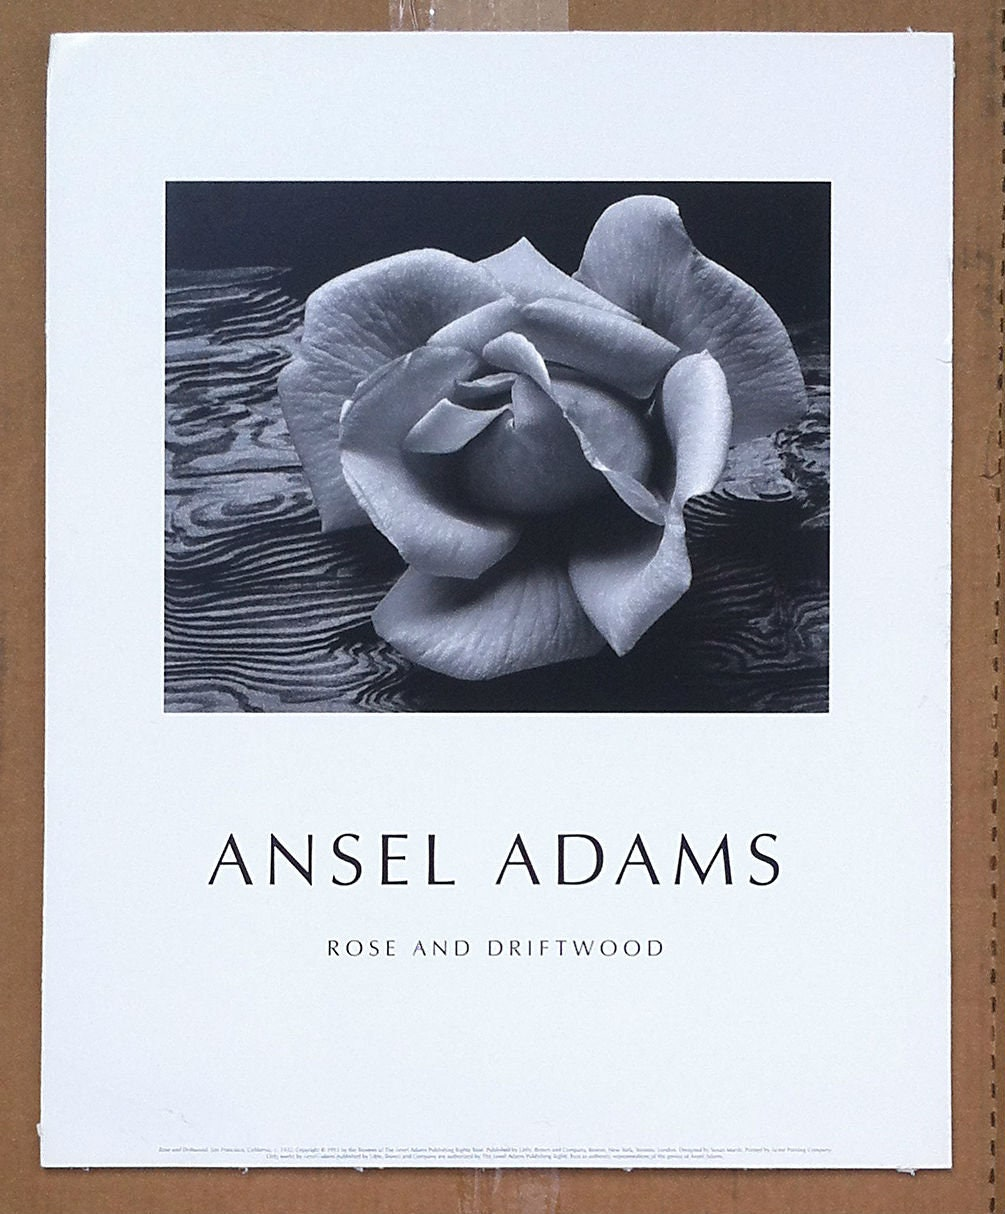 Ansel Adams Rose and Driftwood poster 16 X 20